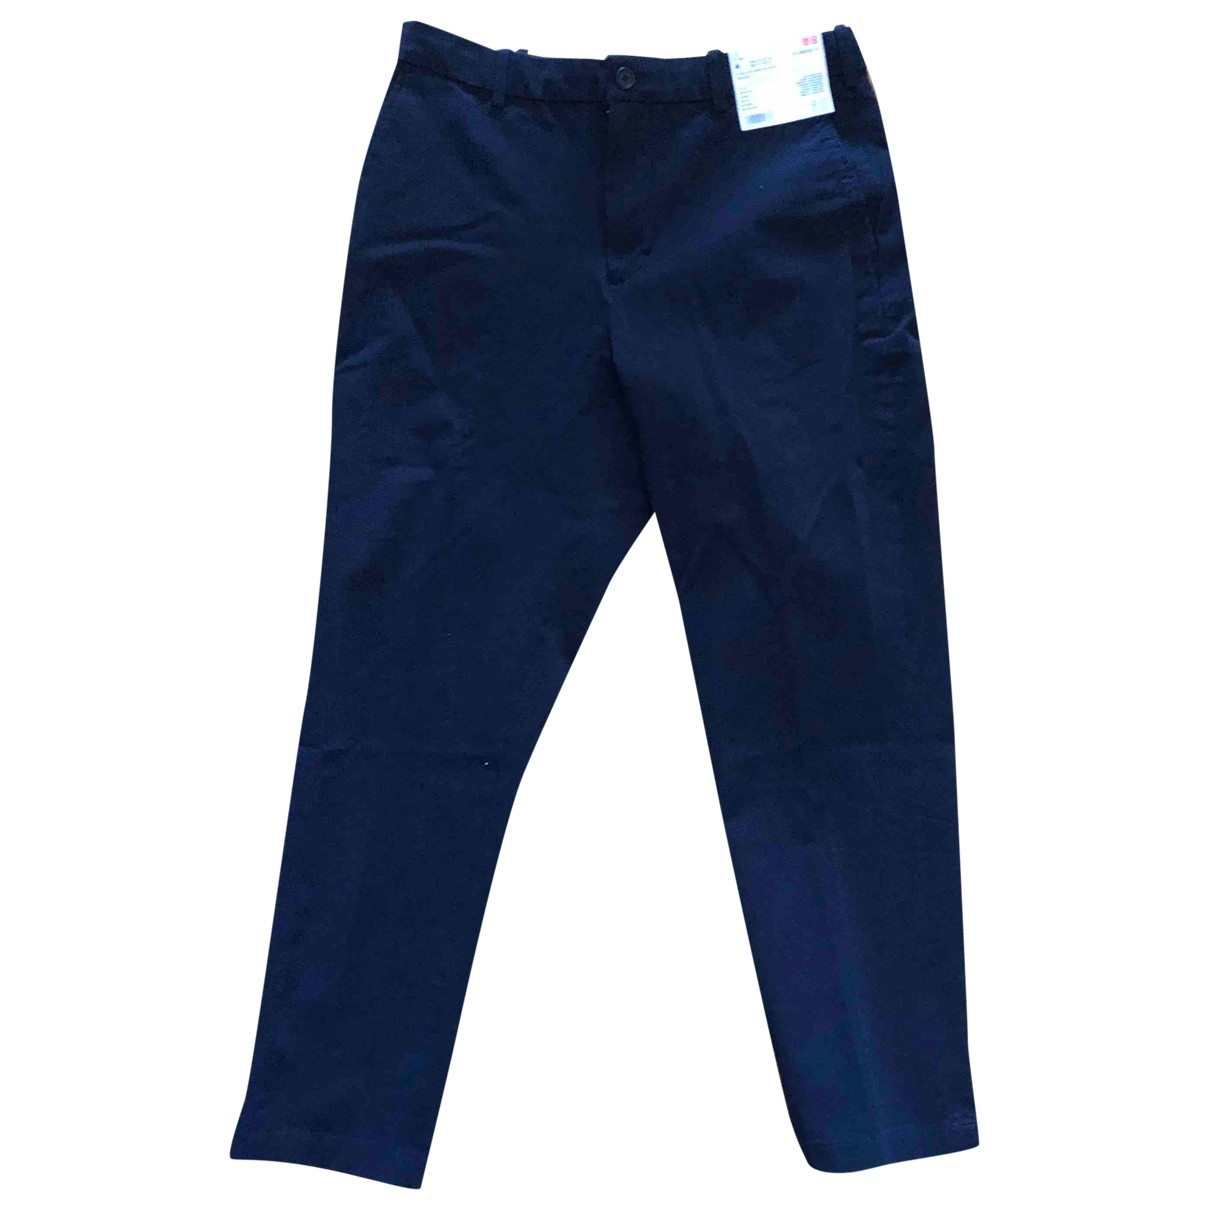 Uniqlo \N Blue Cotton Trousers for Men M International